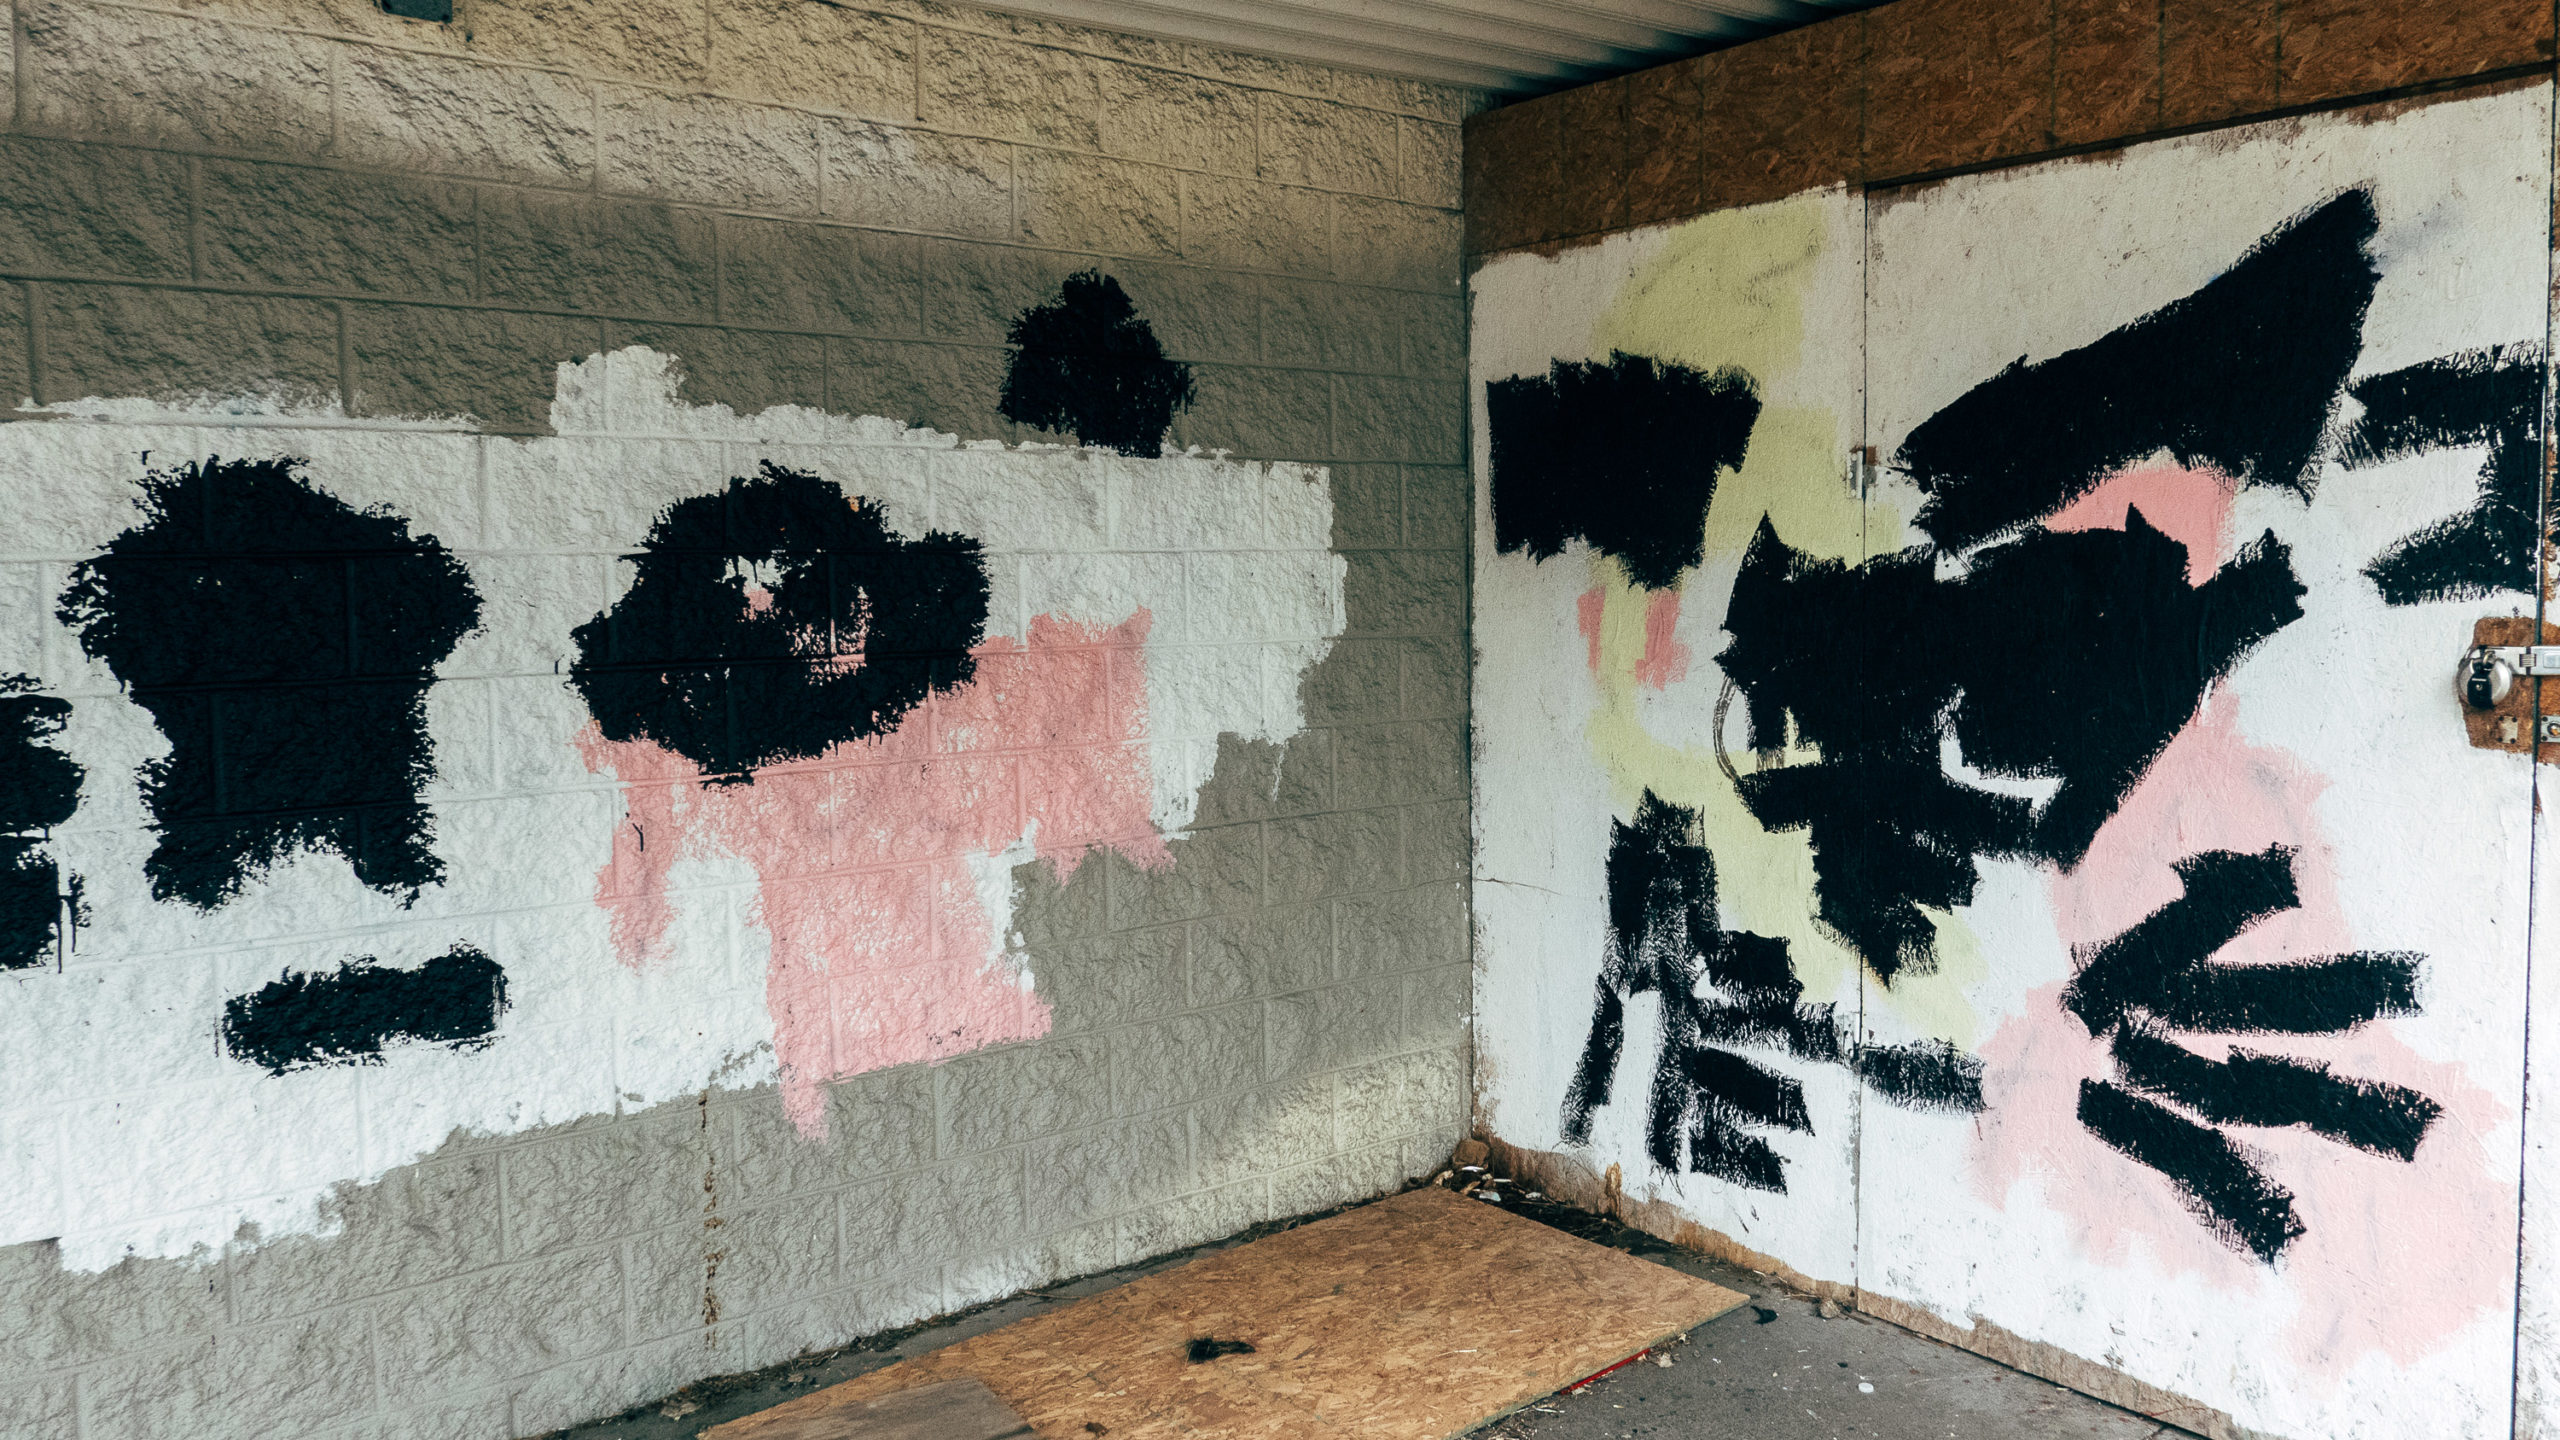 Graffiti covered up with white, pink and black paint